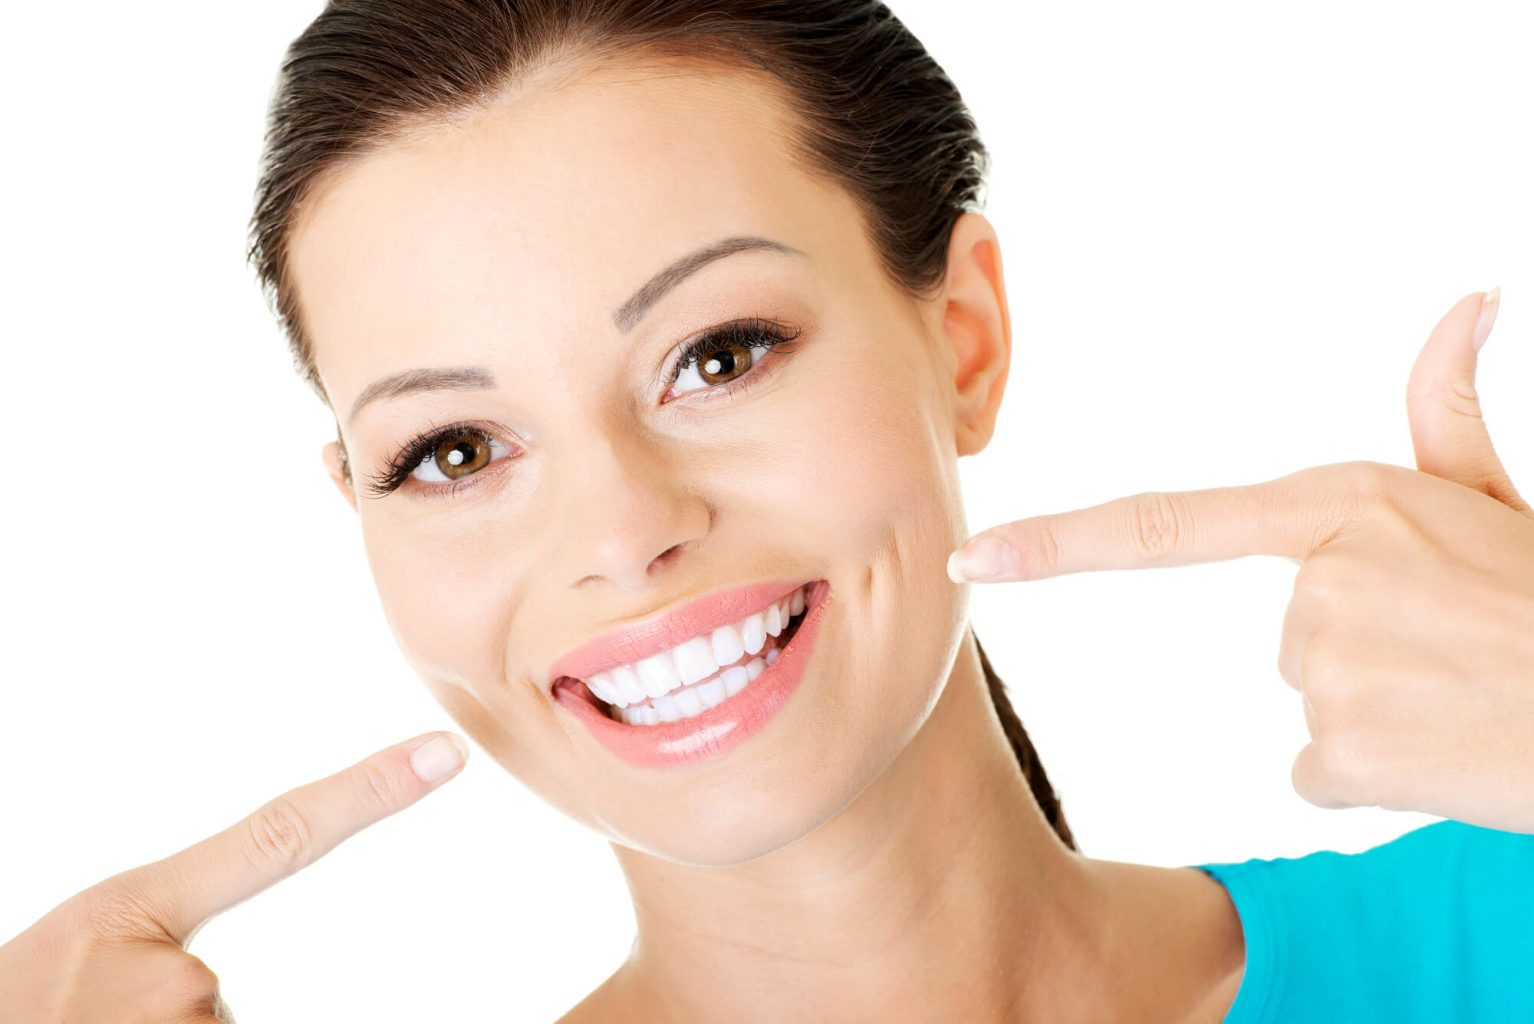 what can the best oak park dentist do for me?